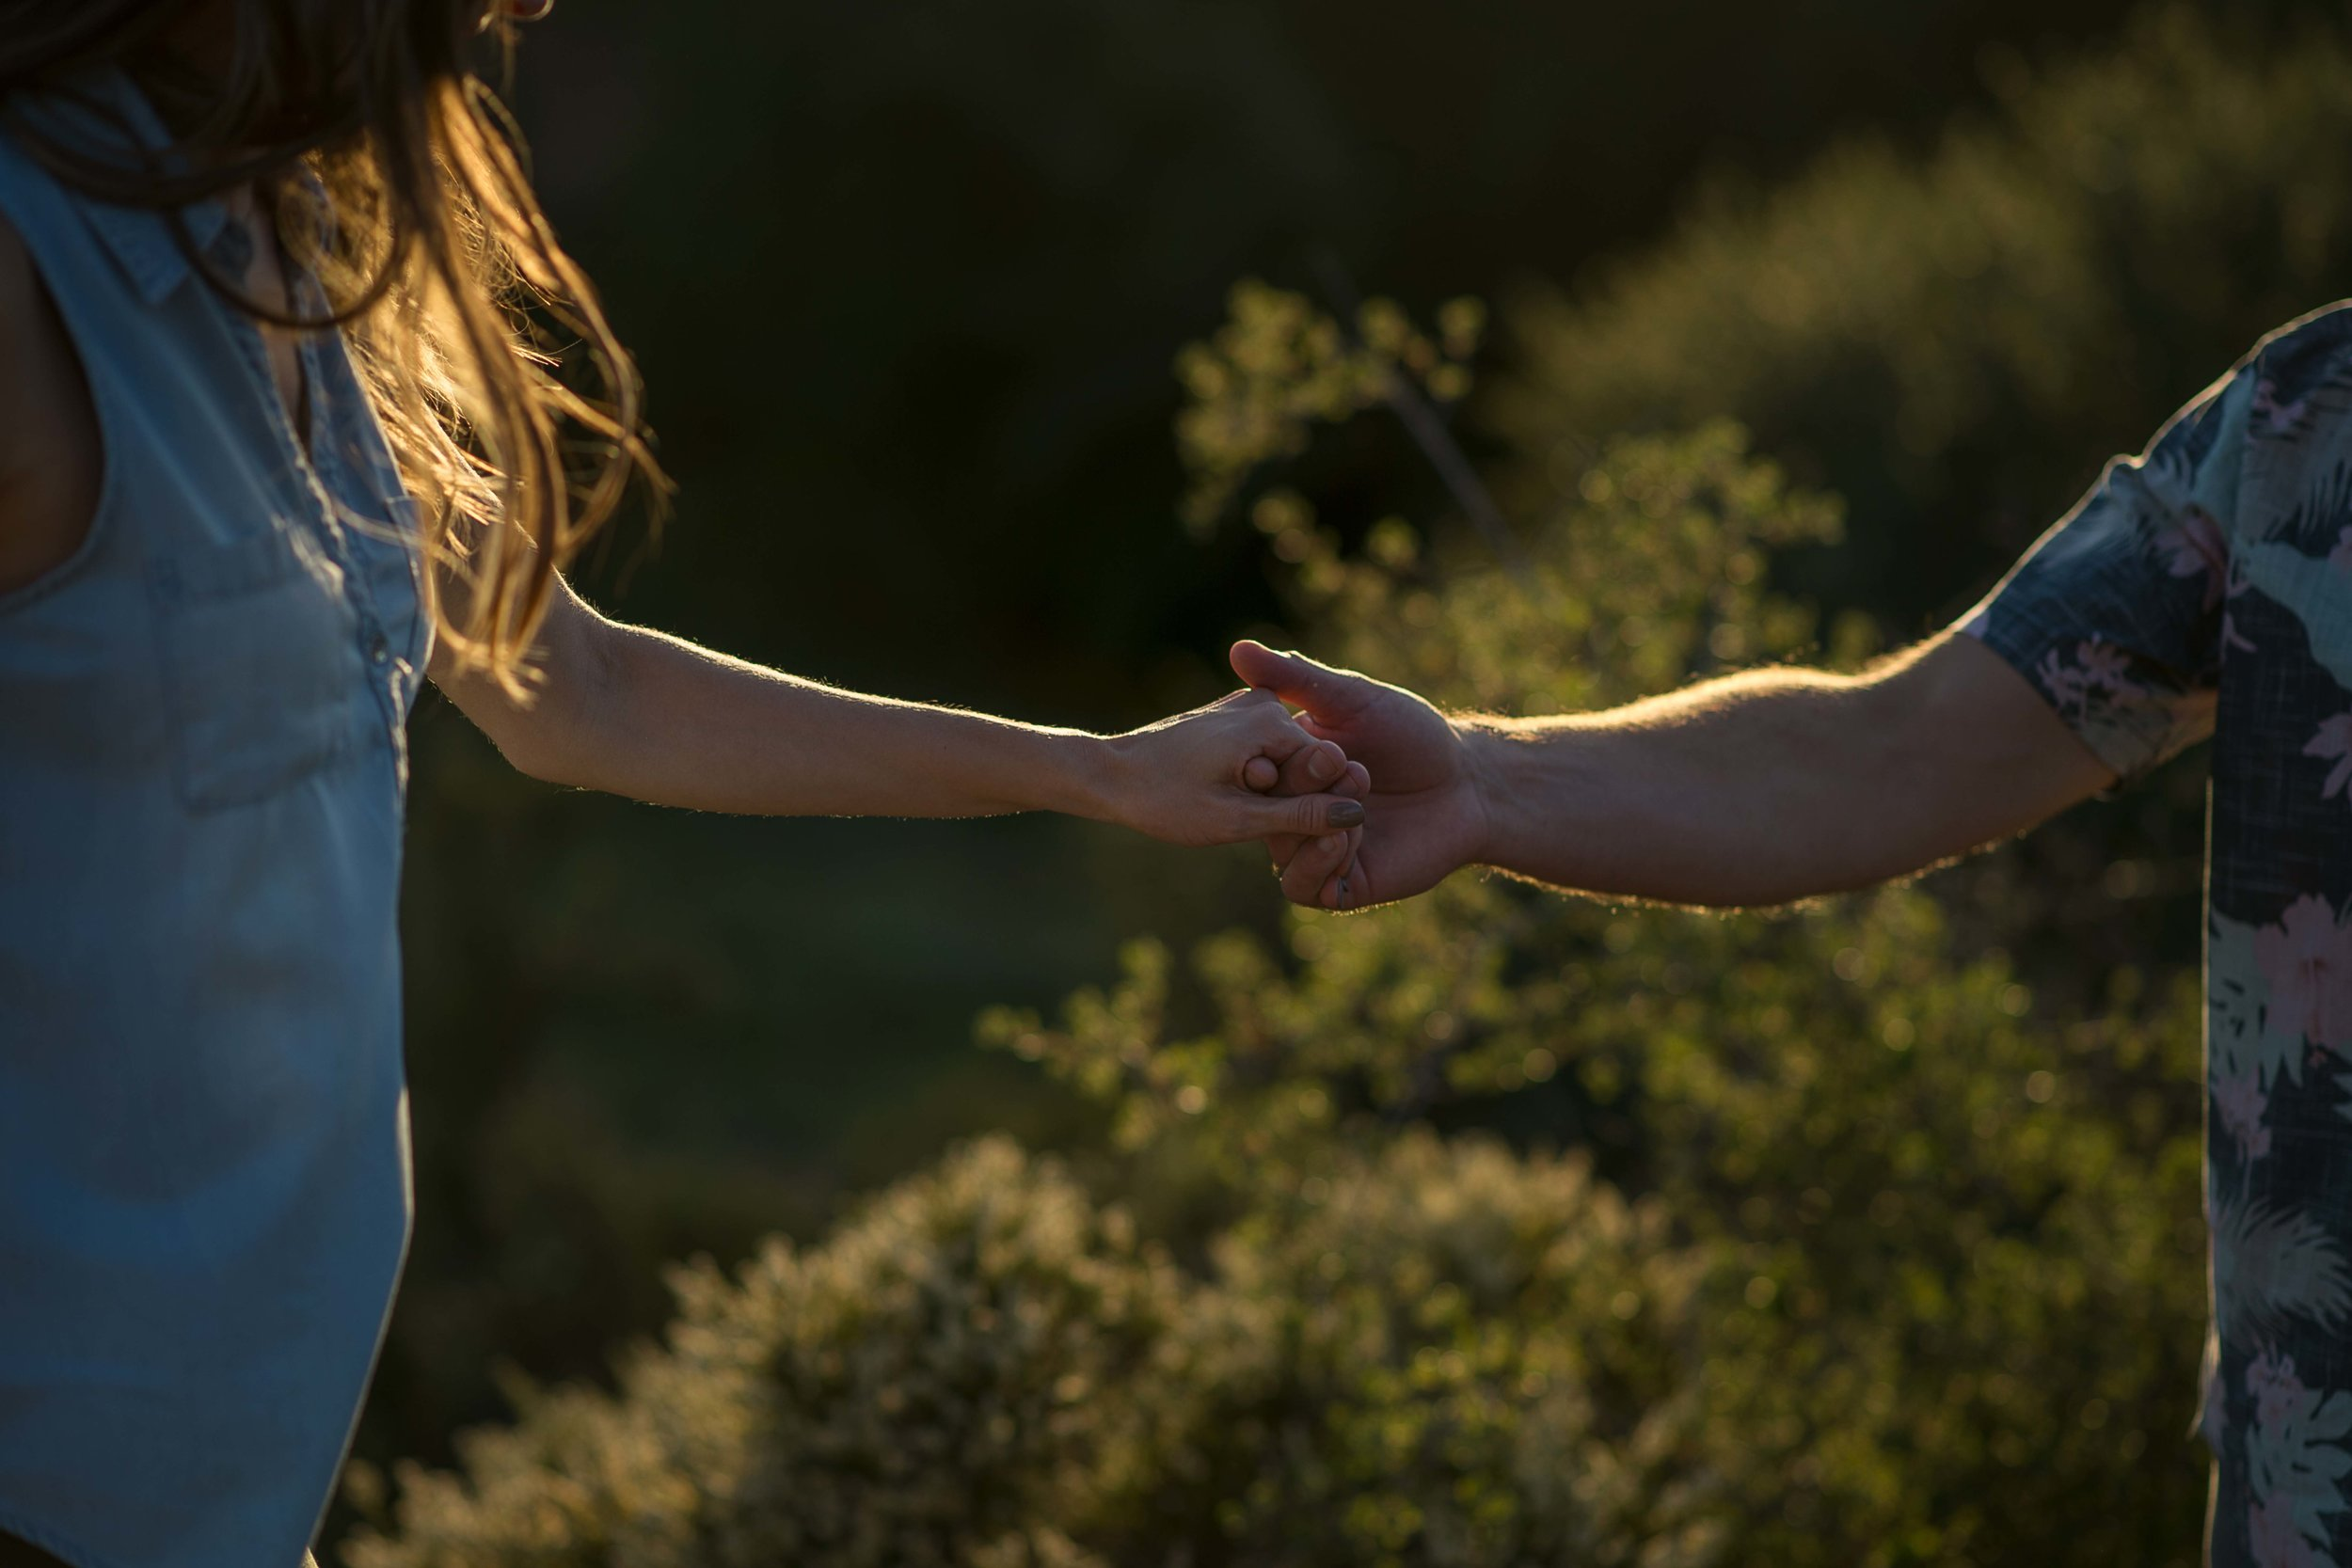 Christy-D-Swanberg-Photography-Calgary-Engagements-southern-california-28.jpg